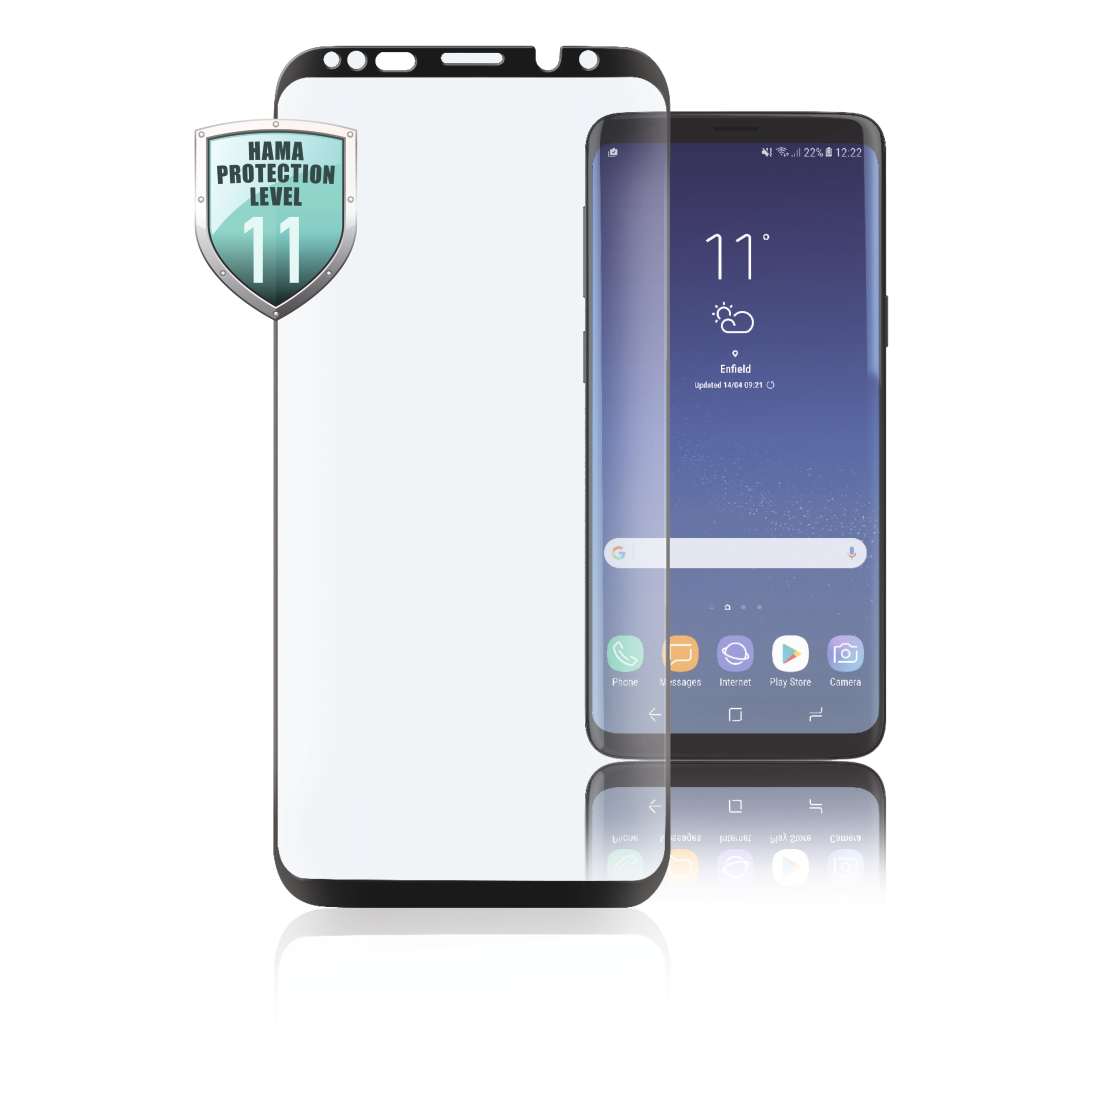 abx High-Res Image - Hama, Verre de protection Full-Screen 3D pour Samsung Galaxy S9, noir